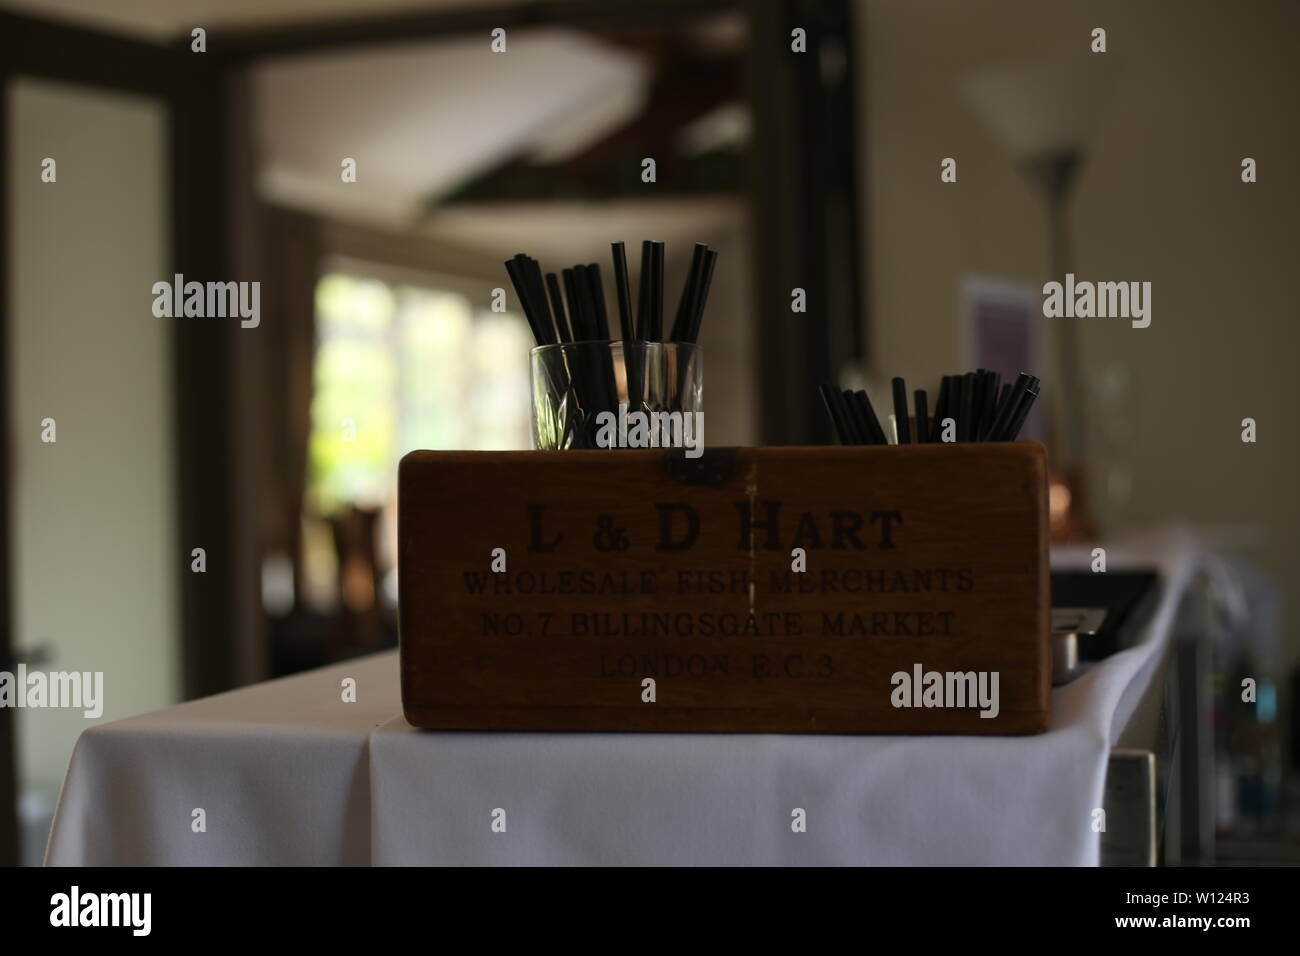 Hotel Industry Business -  A view of rustic chic wooden box at waitress station. - Stock Image